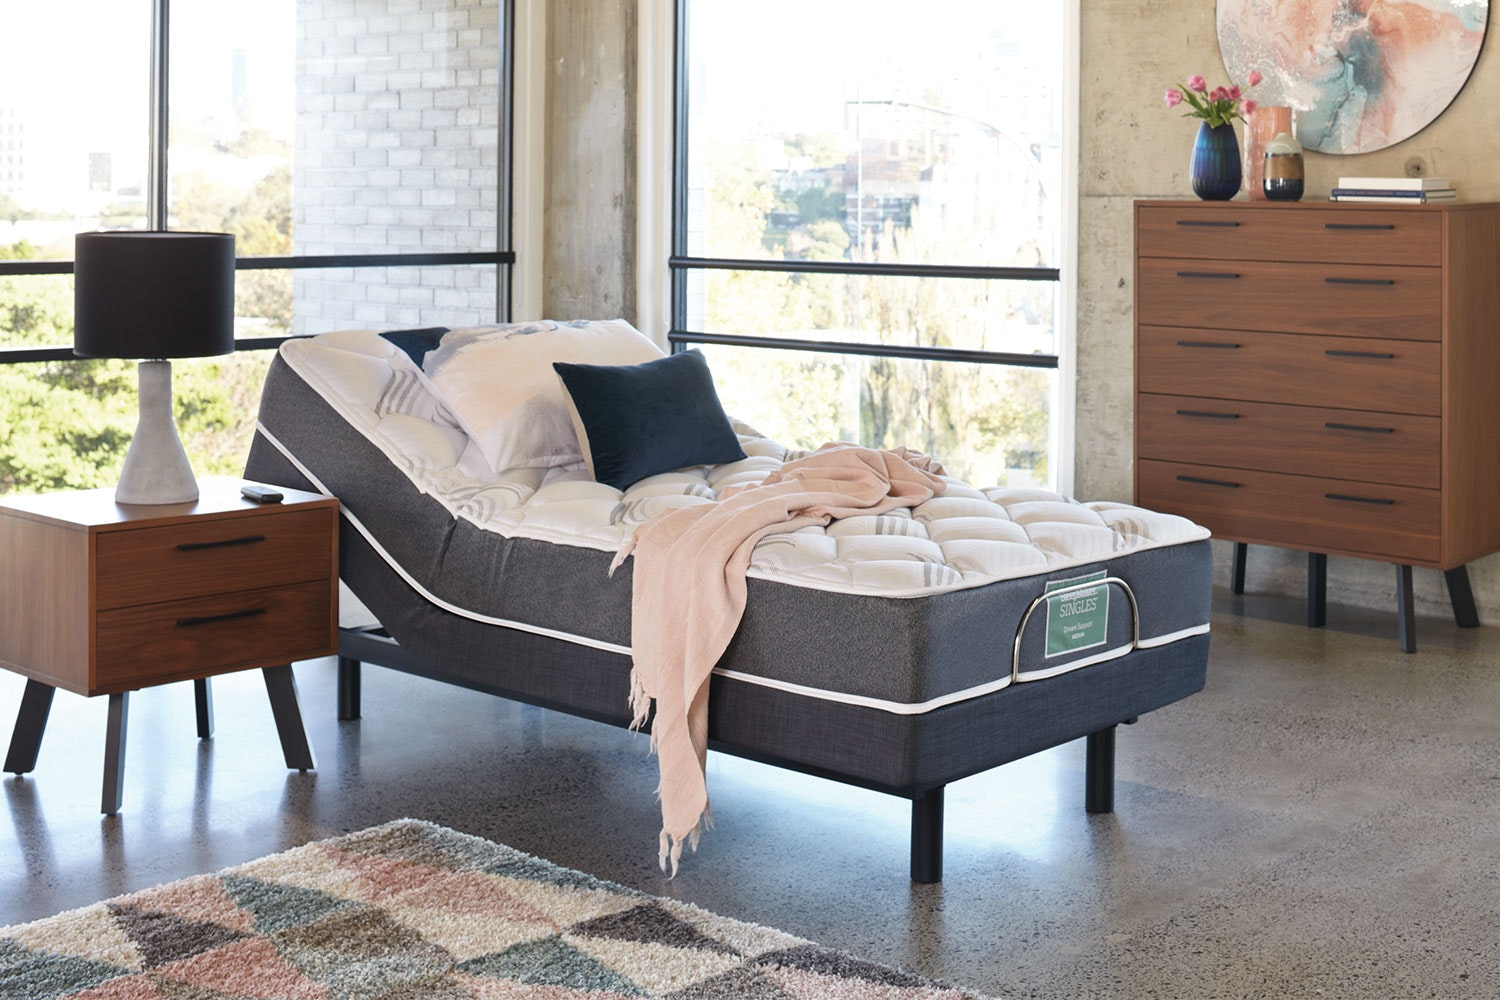 Sleepmaker Dream Support Medium King Single Mattress with Lifestyle Adjustable Base by Tempur